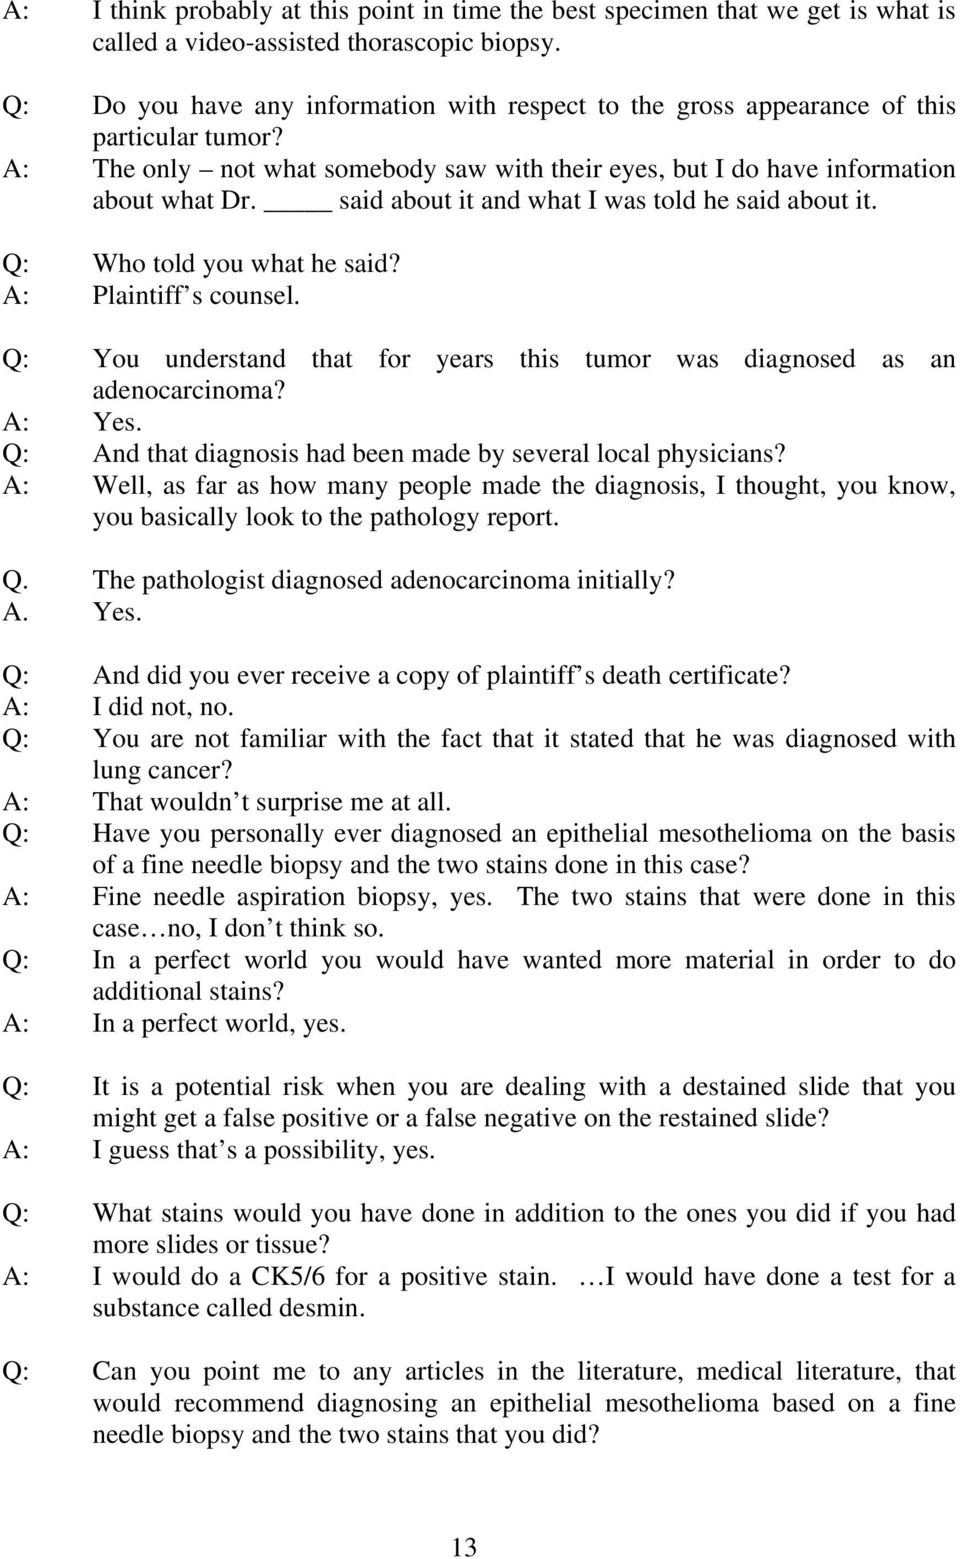 said about it and what I was told he said about it. Q: Who told you what he said? A: Plaintiff s counsel. Q: You understand that for years this tumor was diagnosed as an adenocarcinoma? A: Yes.